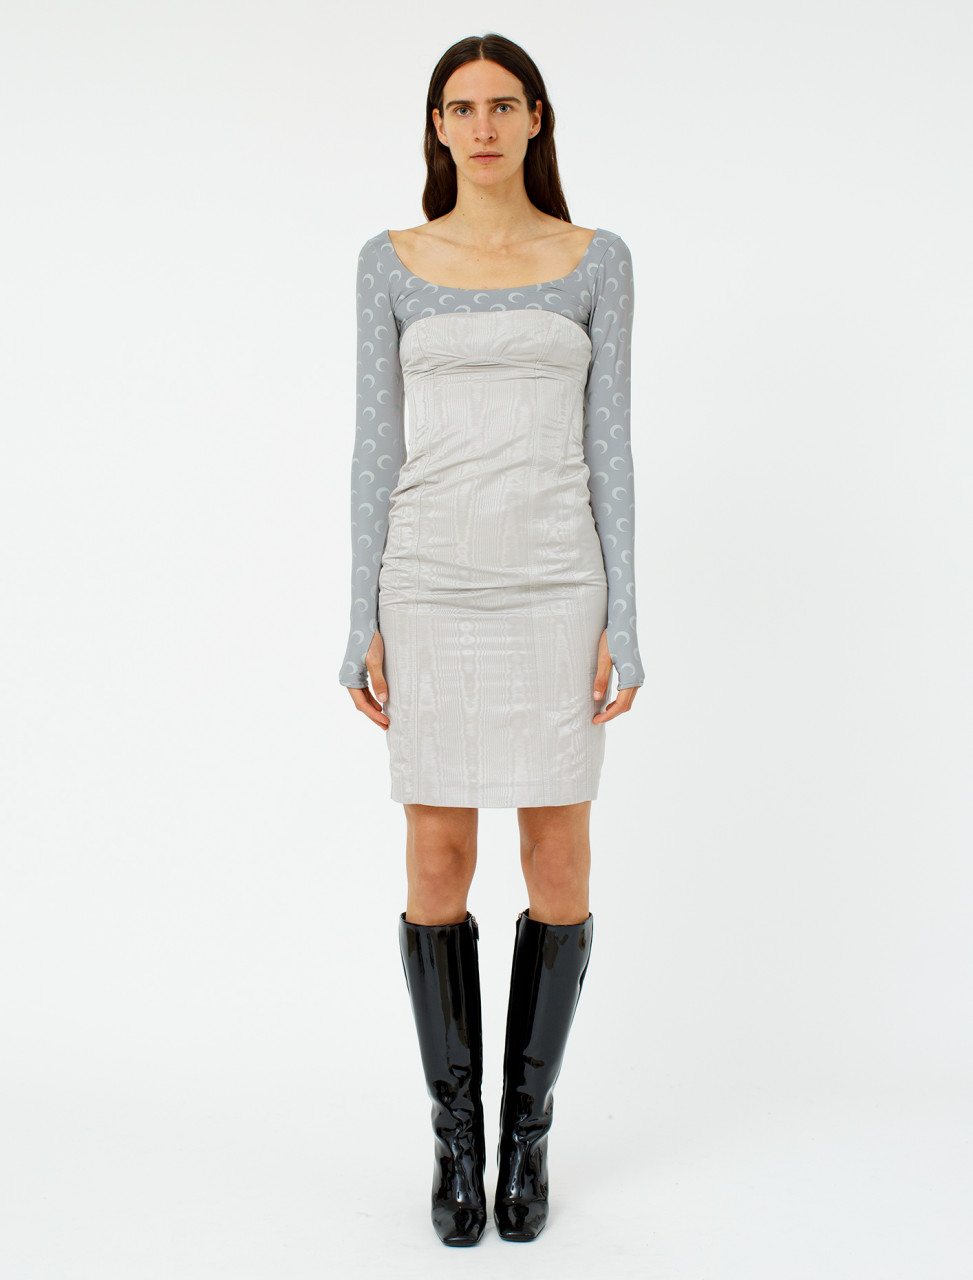 Hybrid Dress with Long Sleeves